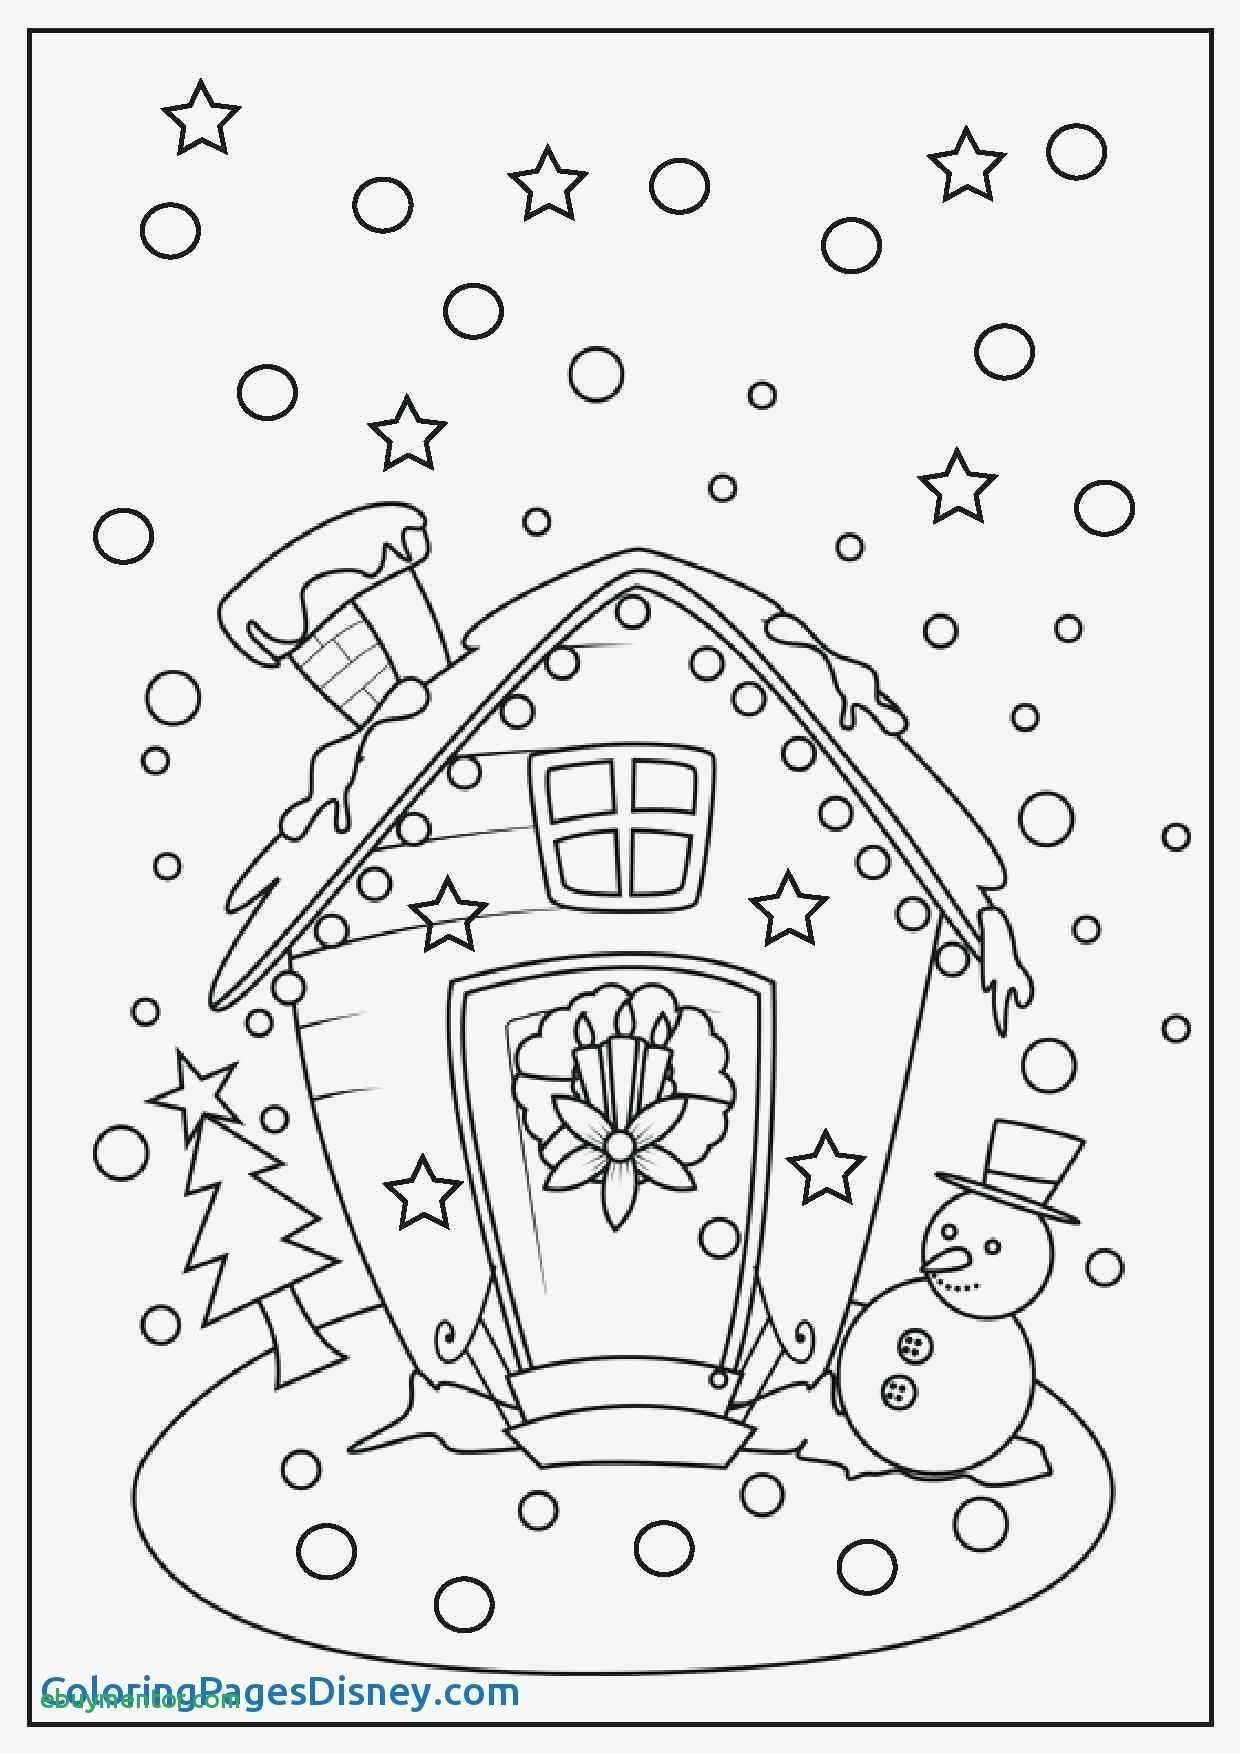 Christmas Coloring Cards Printable Free With Templates And Tutorials